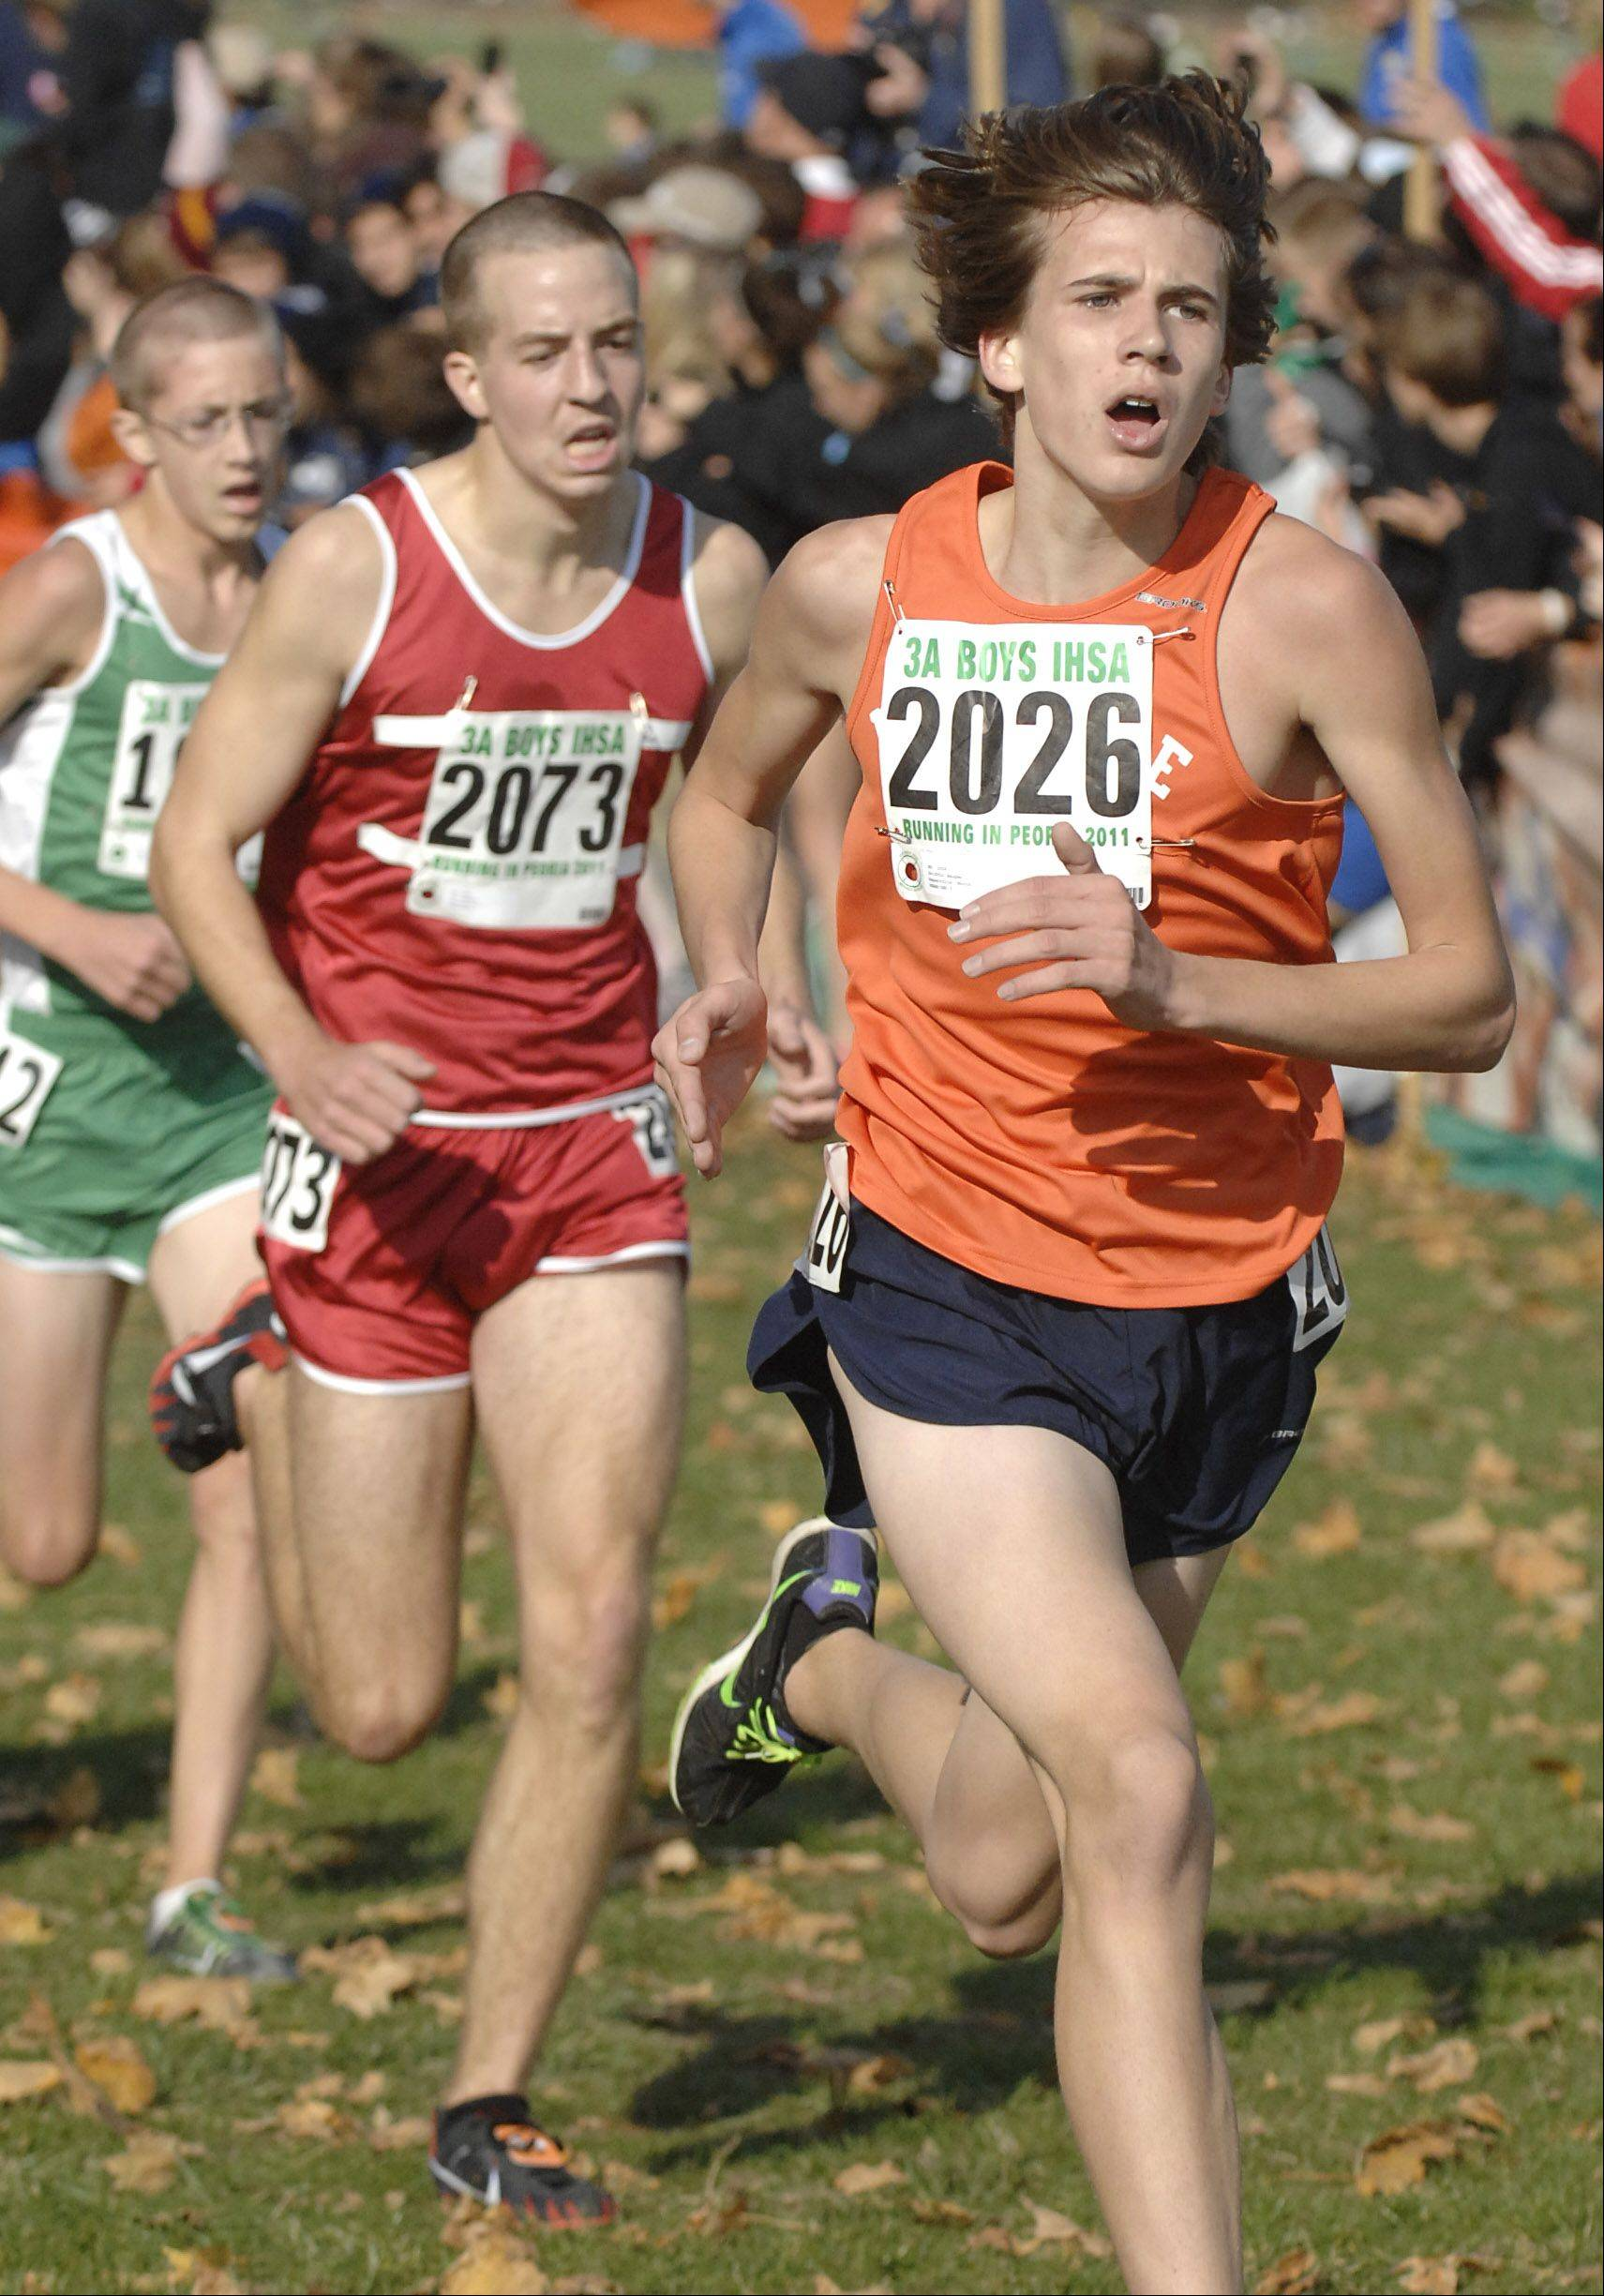 Naperville North�s Griffin Haugen comes in 27th place with a time of 15:04 in the 3A state cross country final in Peoria on Saturday, November 5.